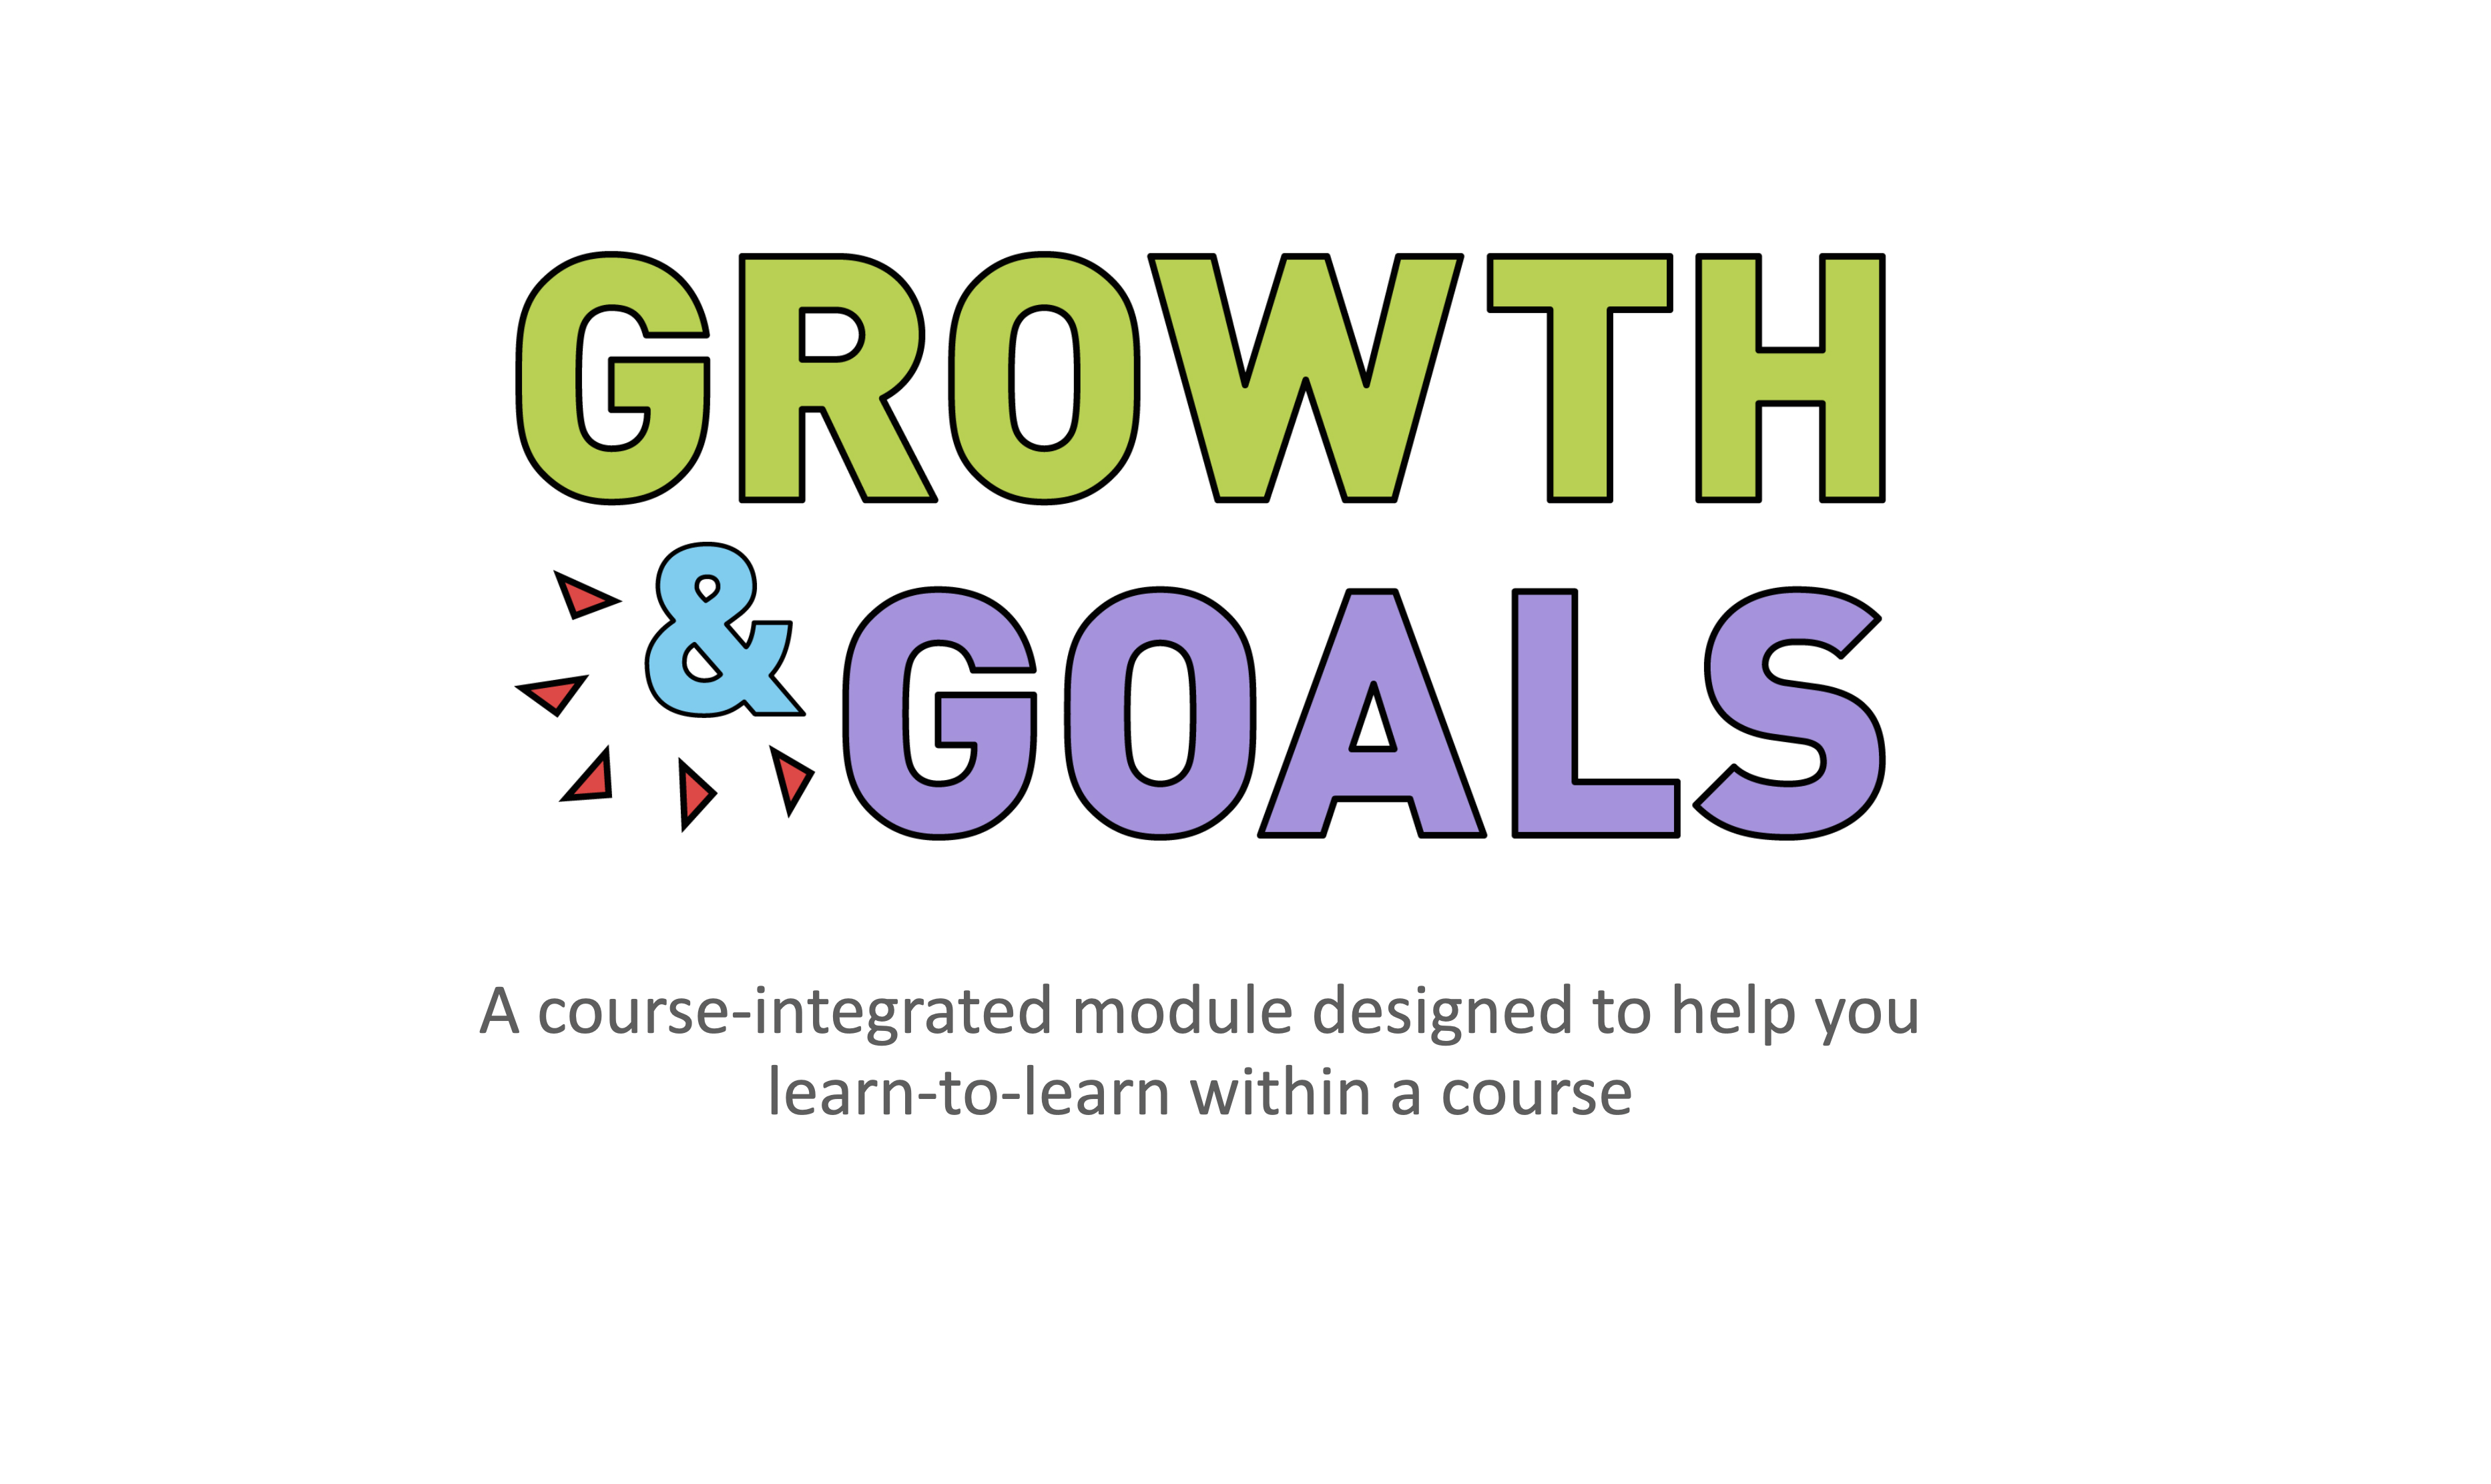 Cover image for Growth & Goals: a course-integrated module to better equip students with learning skills